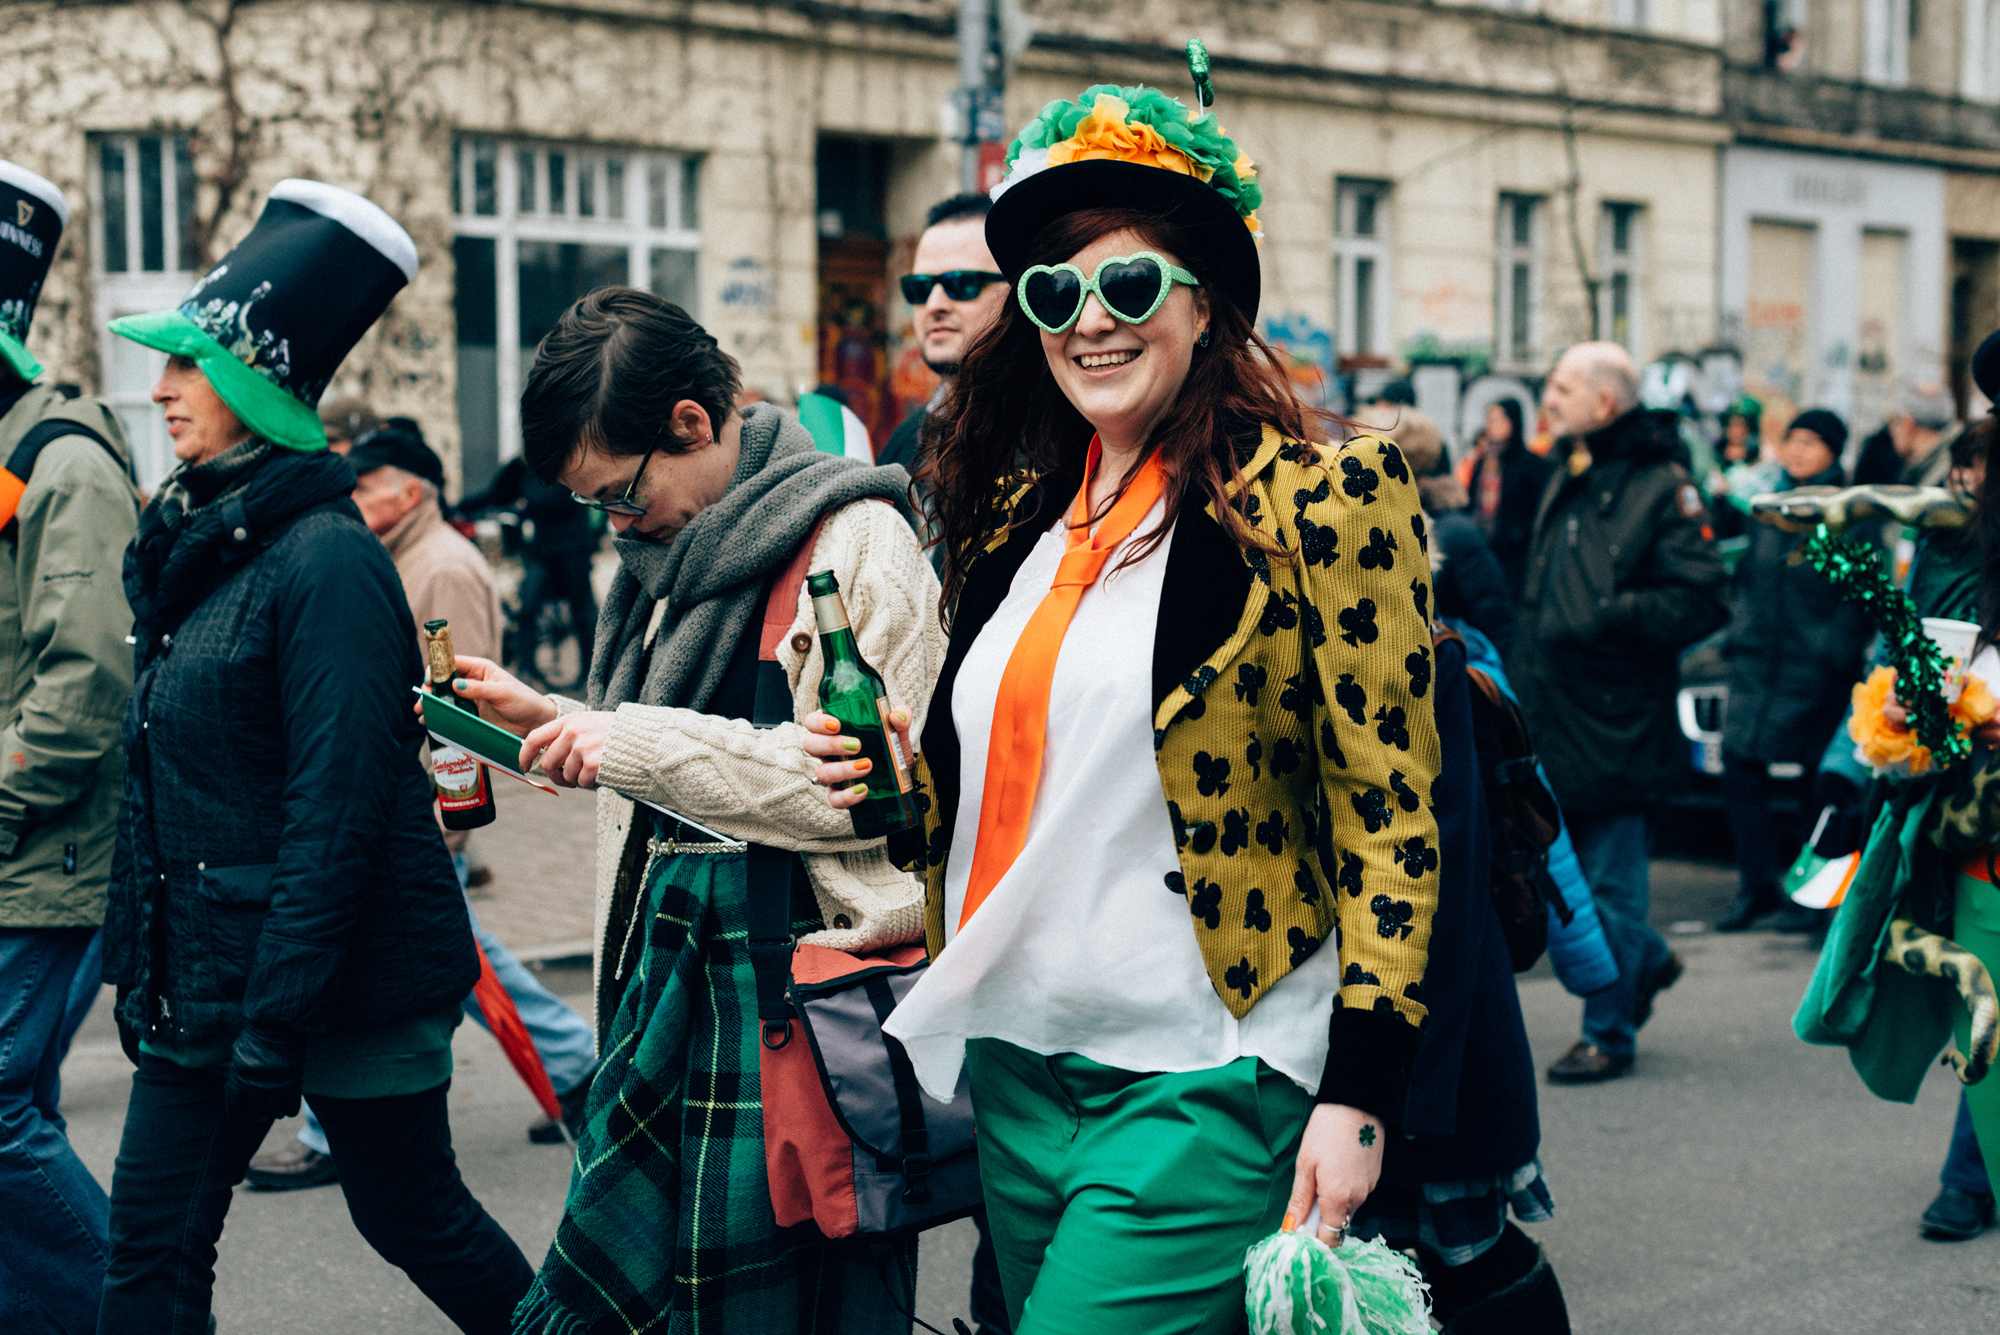 st-patricks-day-berlin-©-camille-blake-31.jpg